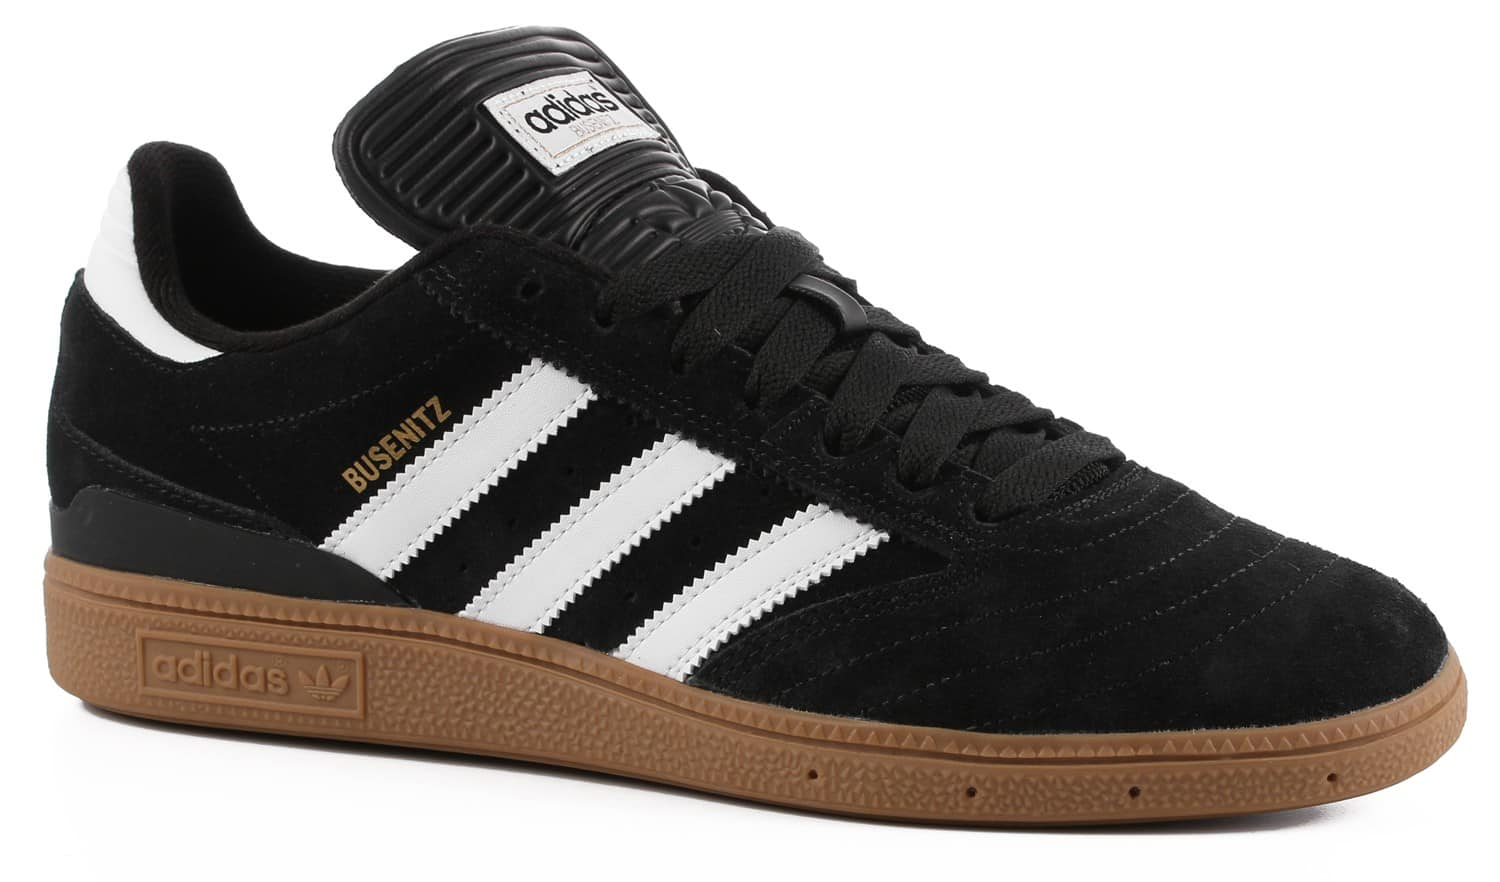 Are Adidas Gazelles Skate Shoes